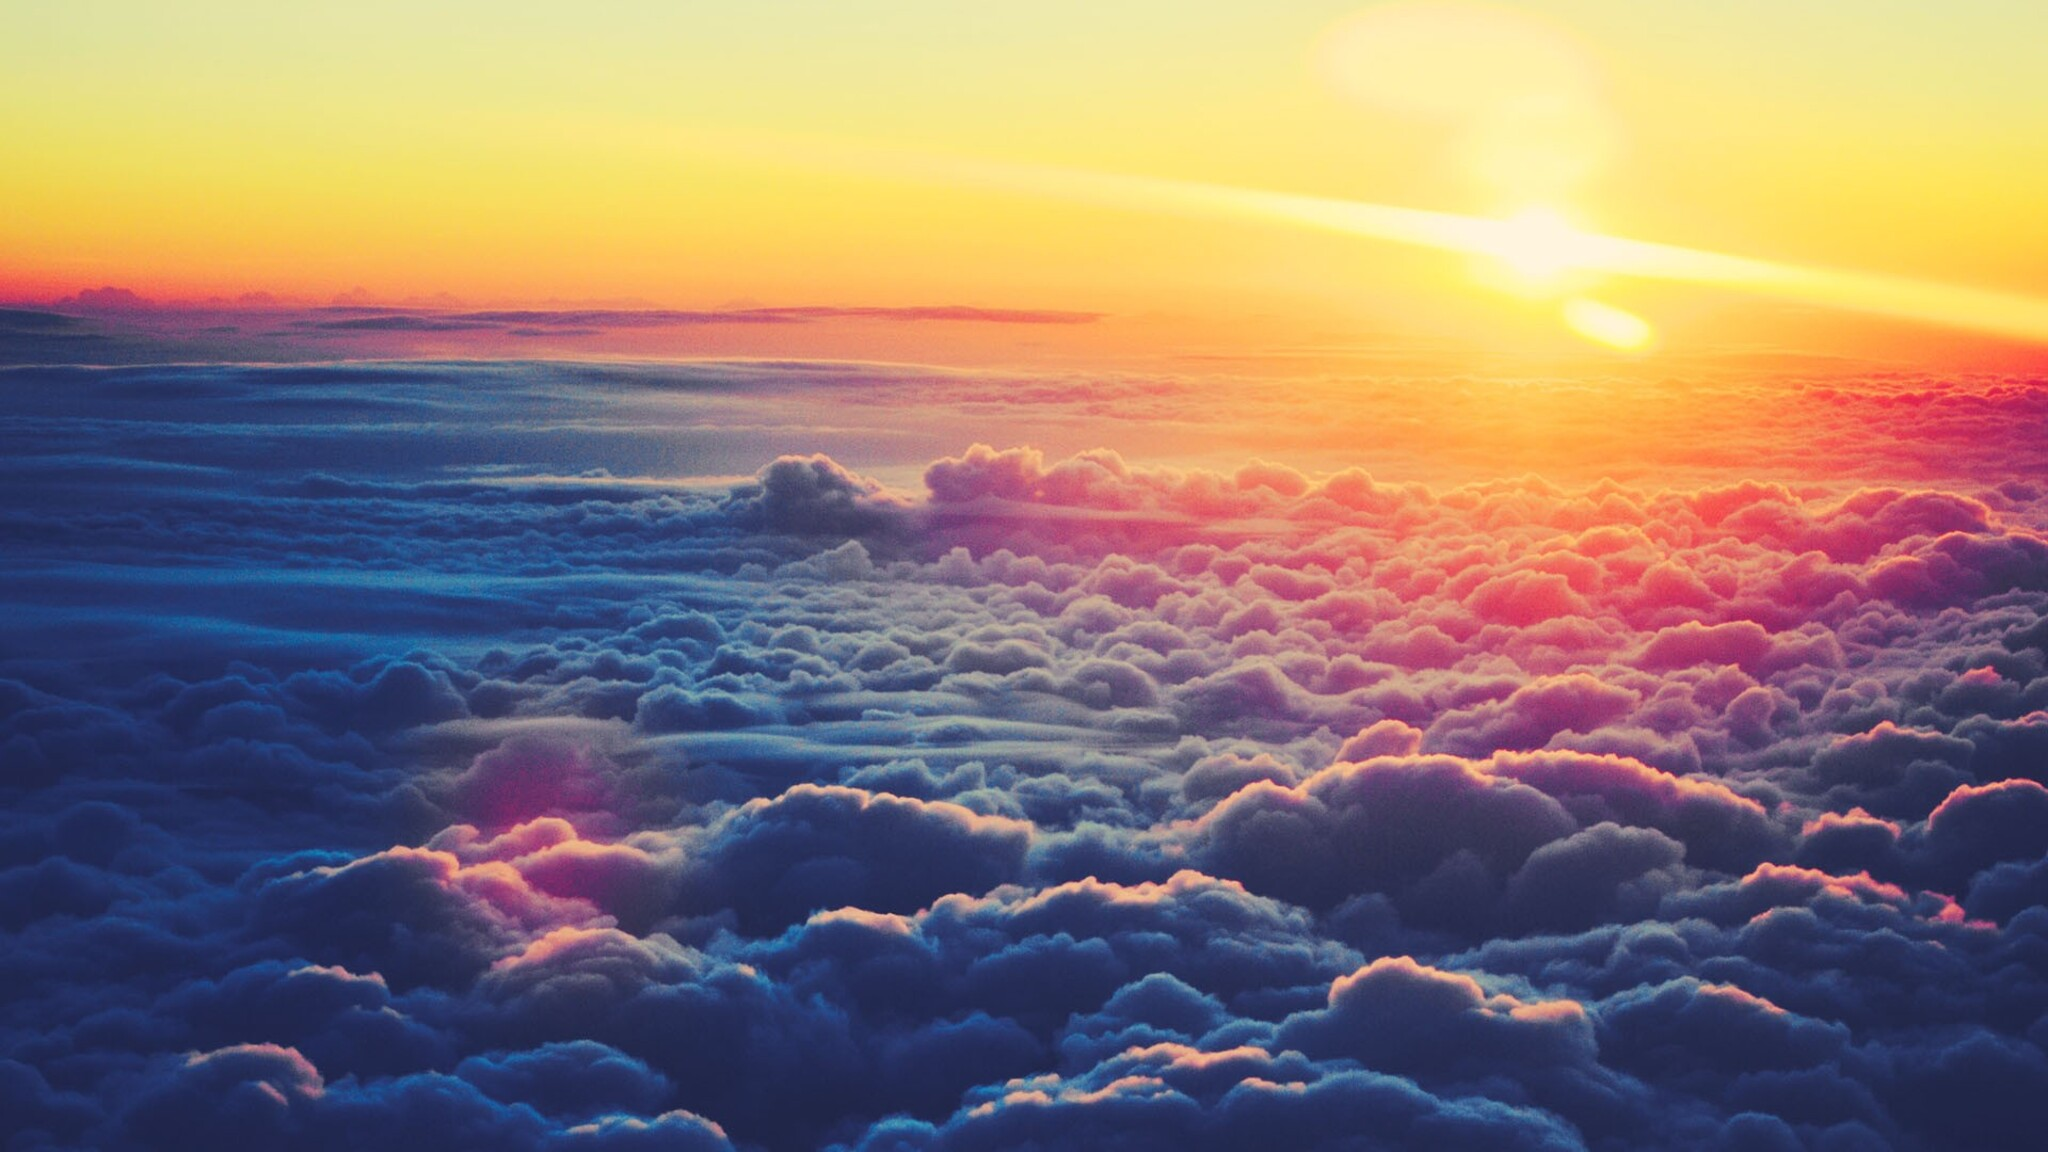 2048x1152 sky clouds view from top 2048x1152 resolution hd for 2048x1152 wallpaper